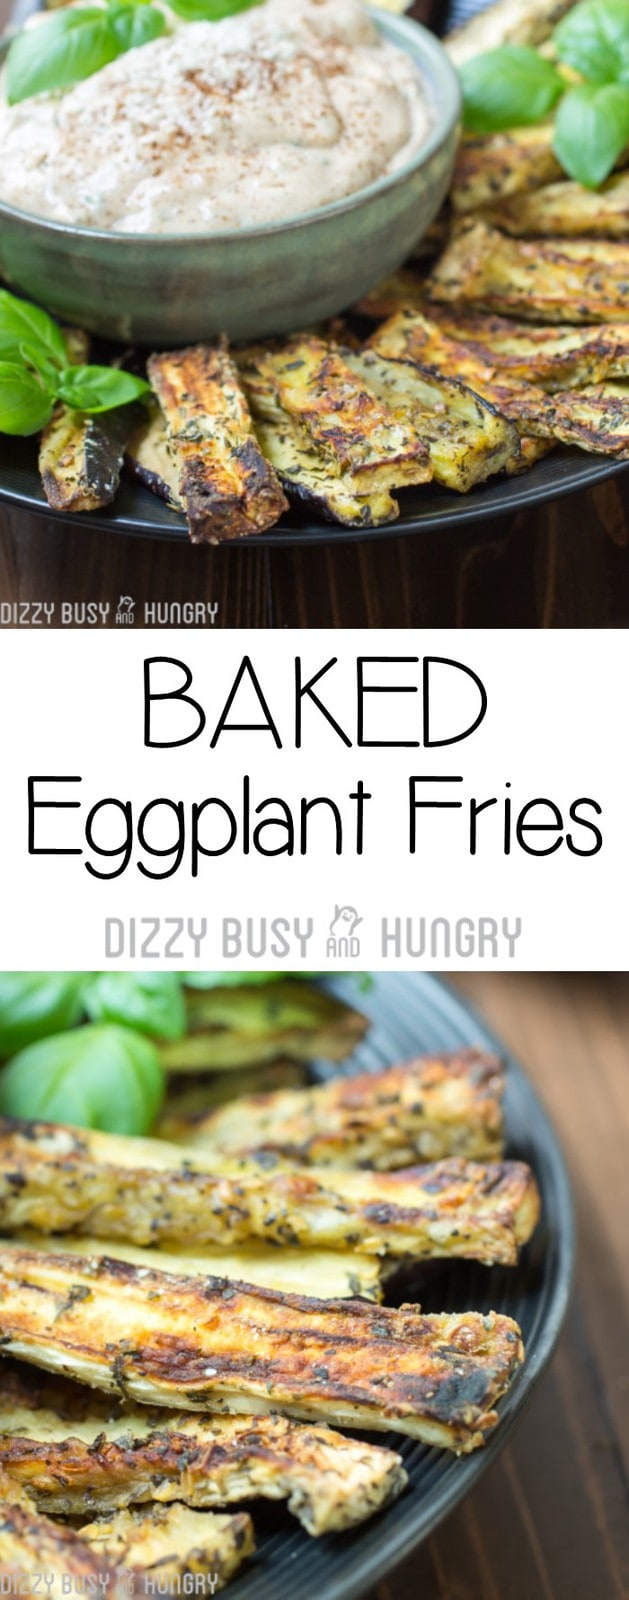 Baked Eggplant Fries | DizzyBusyandHungry.com - Delicious and healthy upscaled French fries that will wow your family and impress your guests!